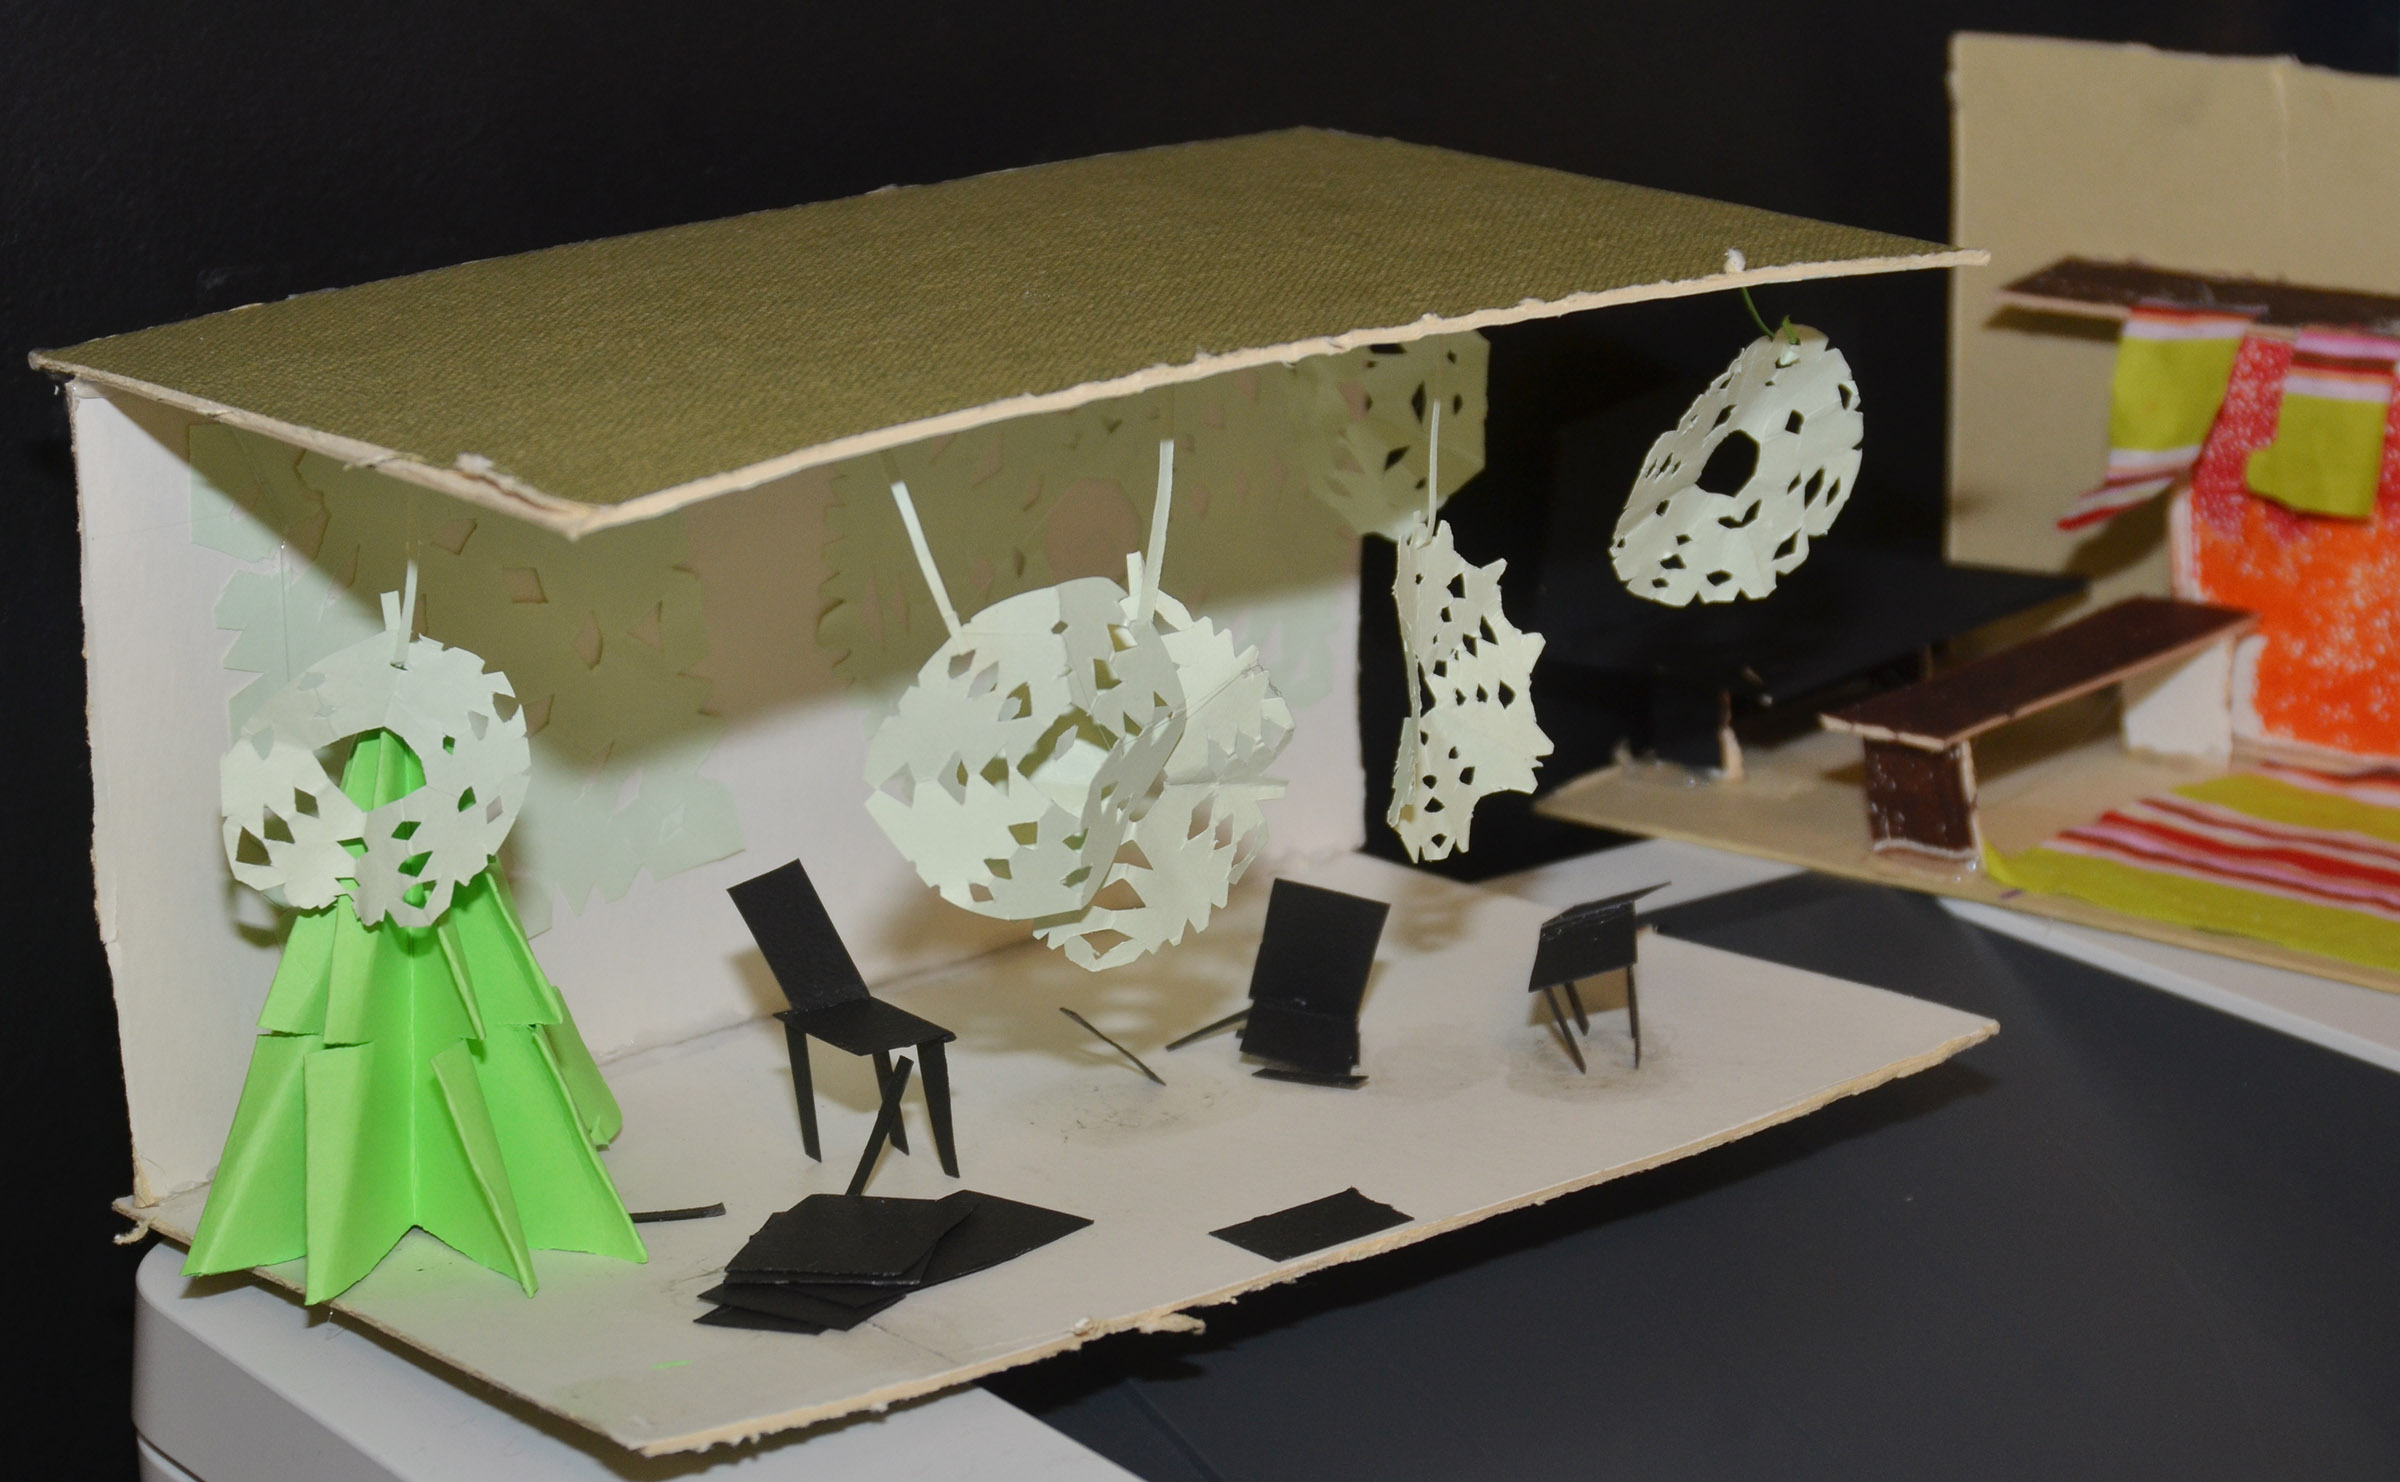 CHS art students created miniature models of their set designs, like this one.